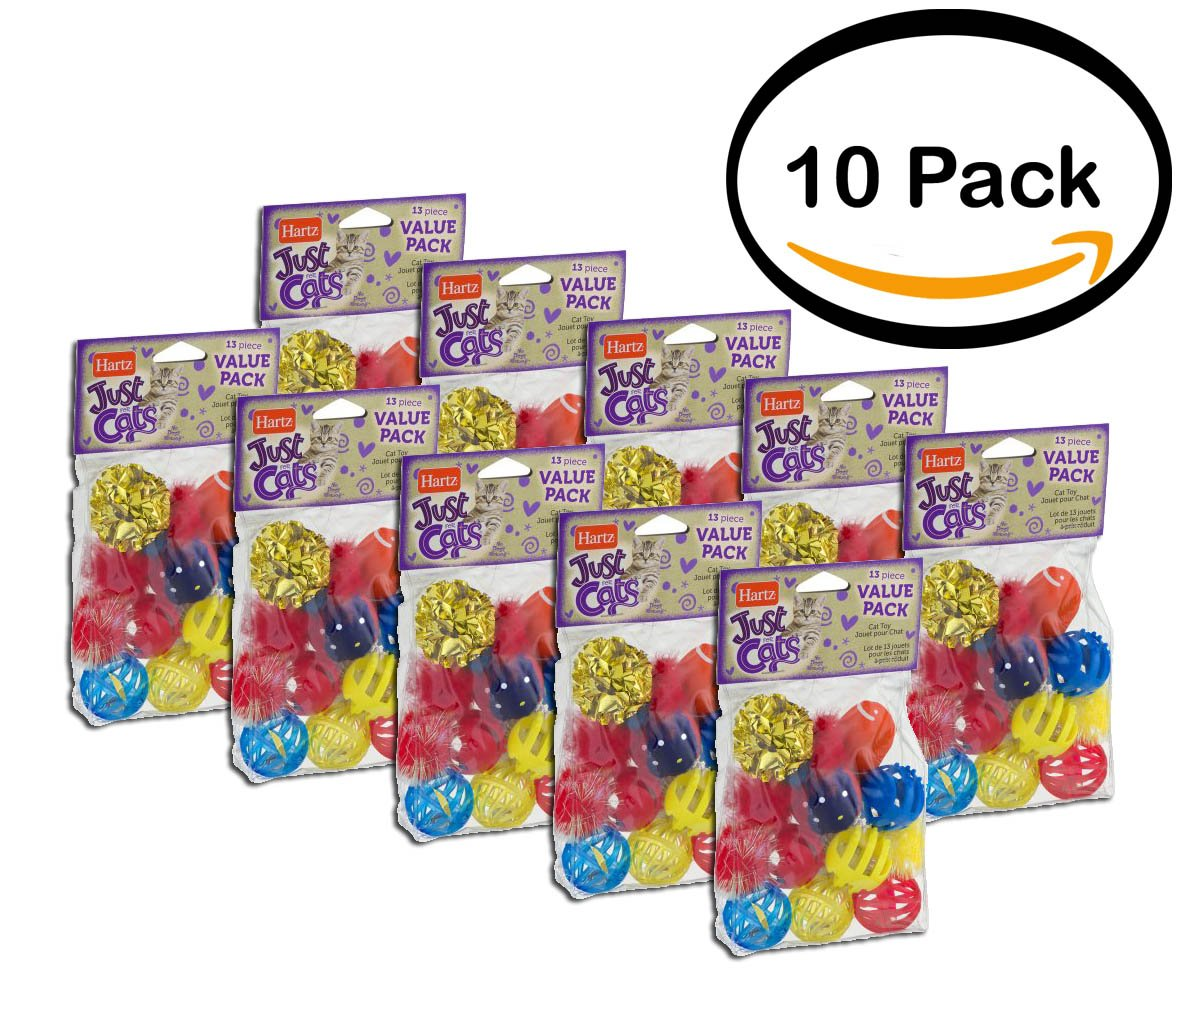 PACK OF 10 - Hartz Just For Cats Cat Toys Value Pack, 13ct